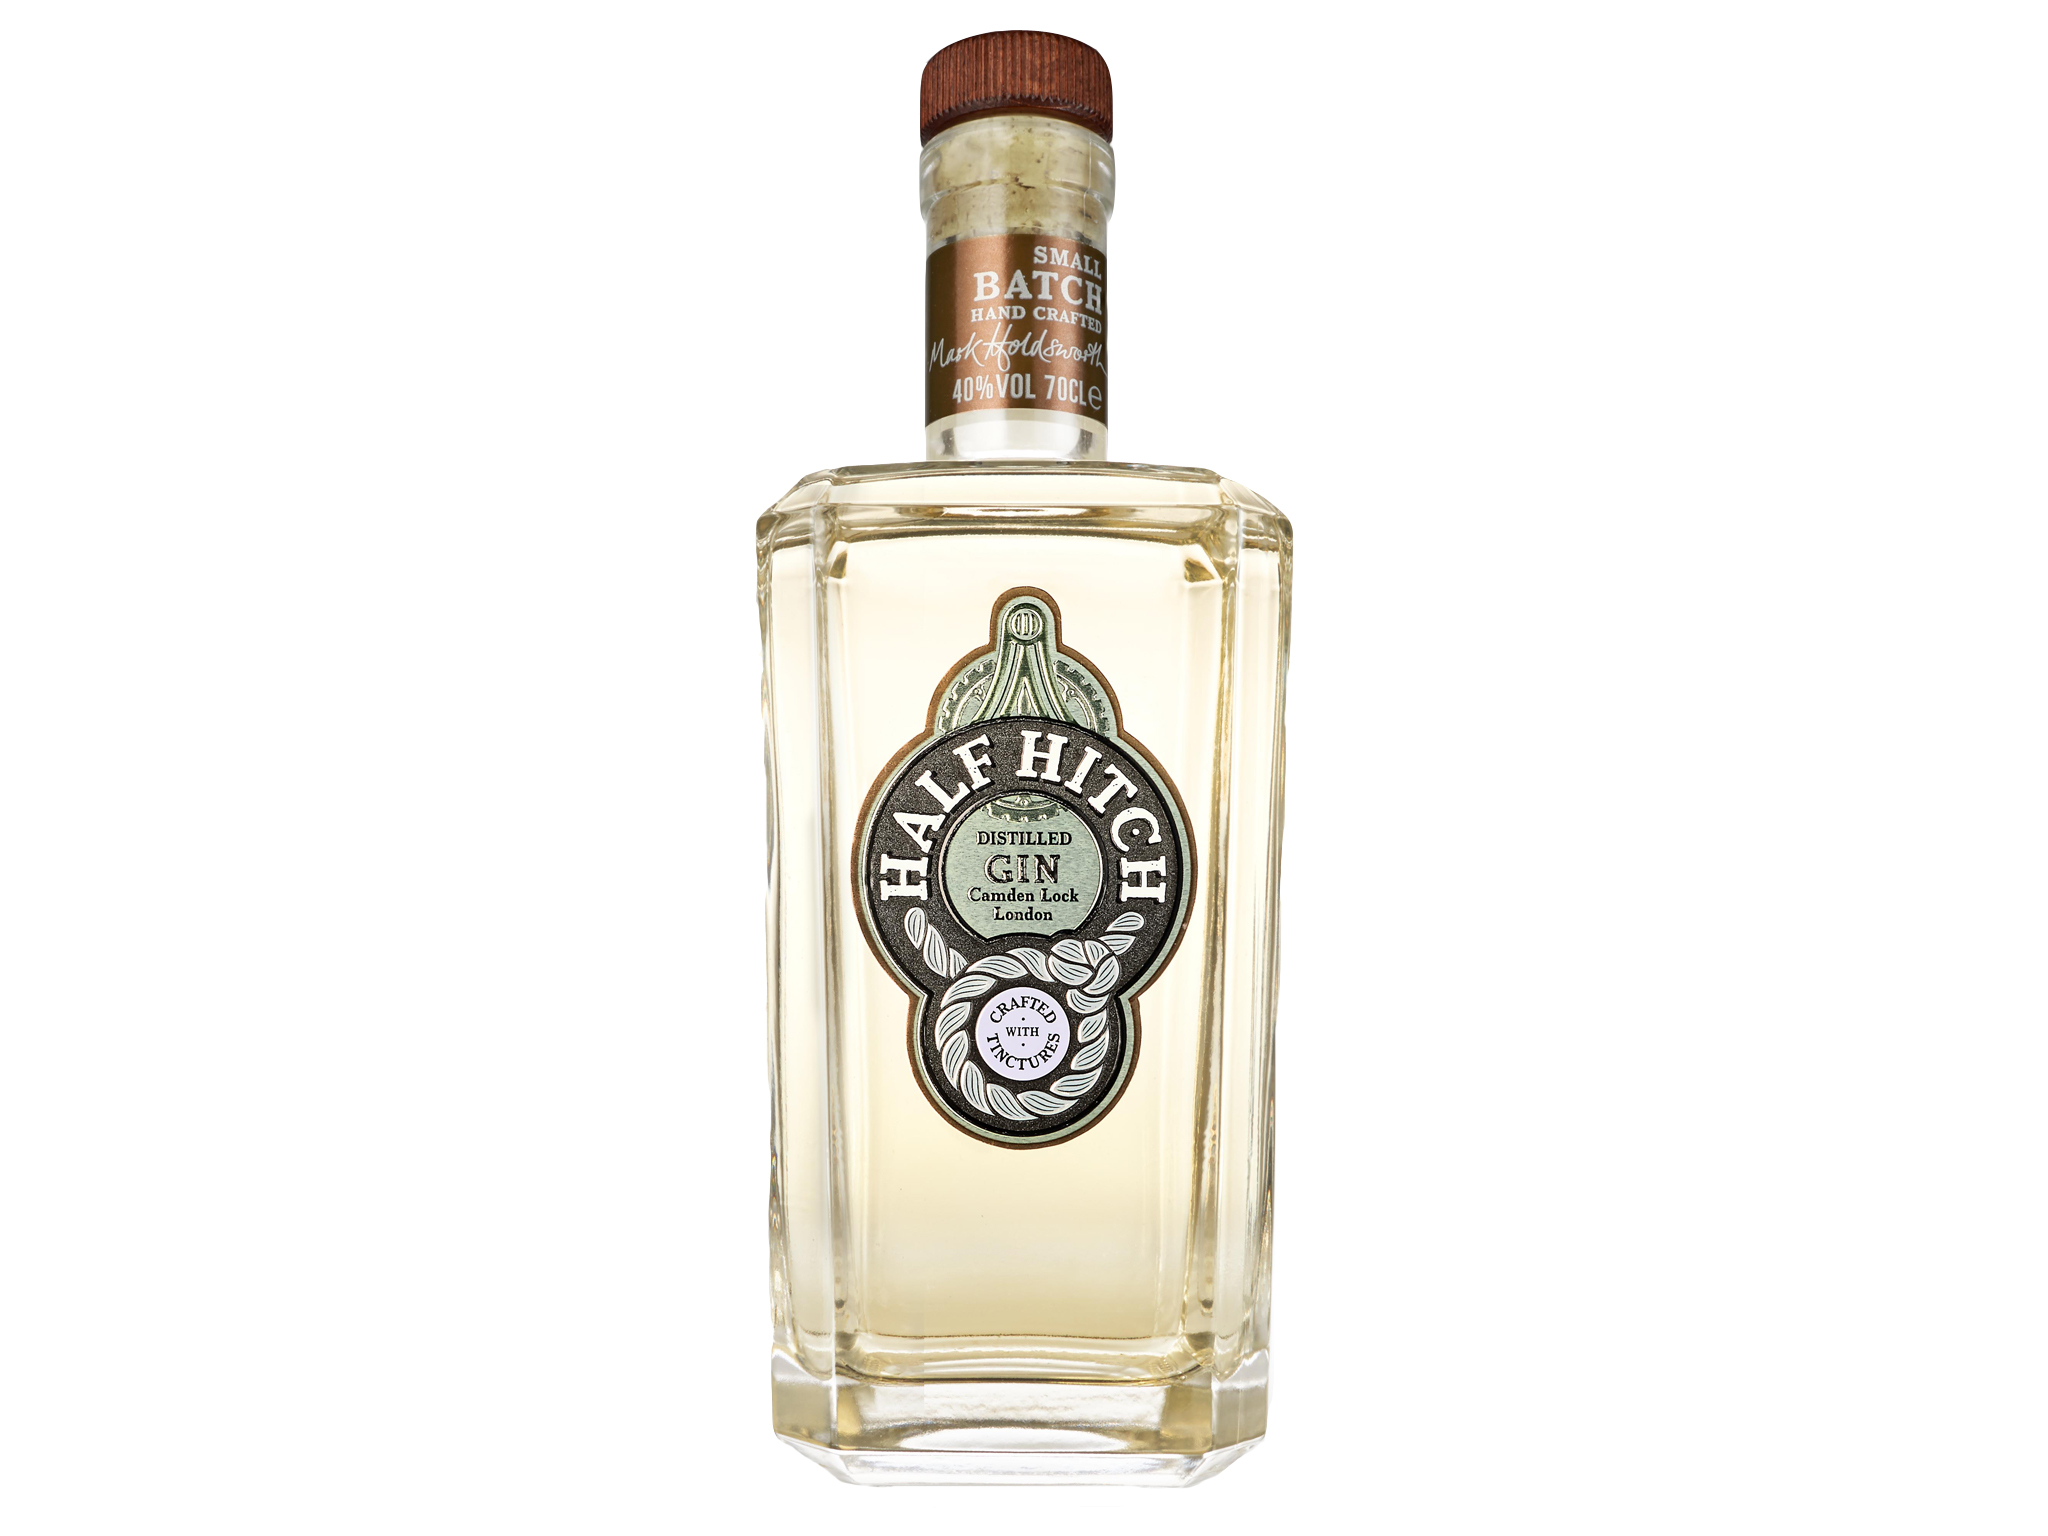 London's best gin, half hitch